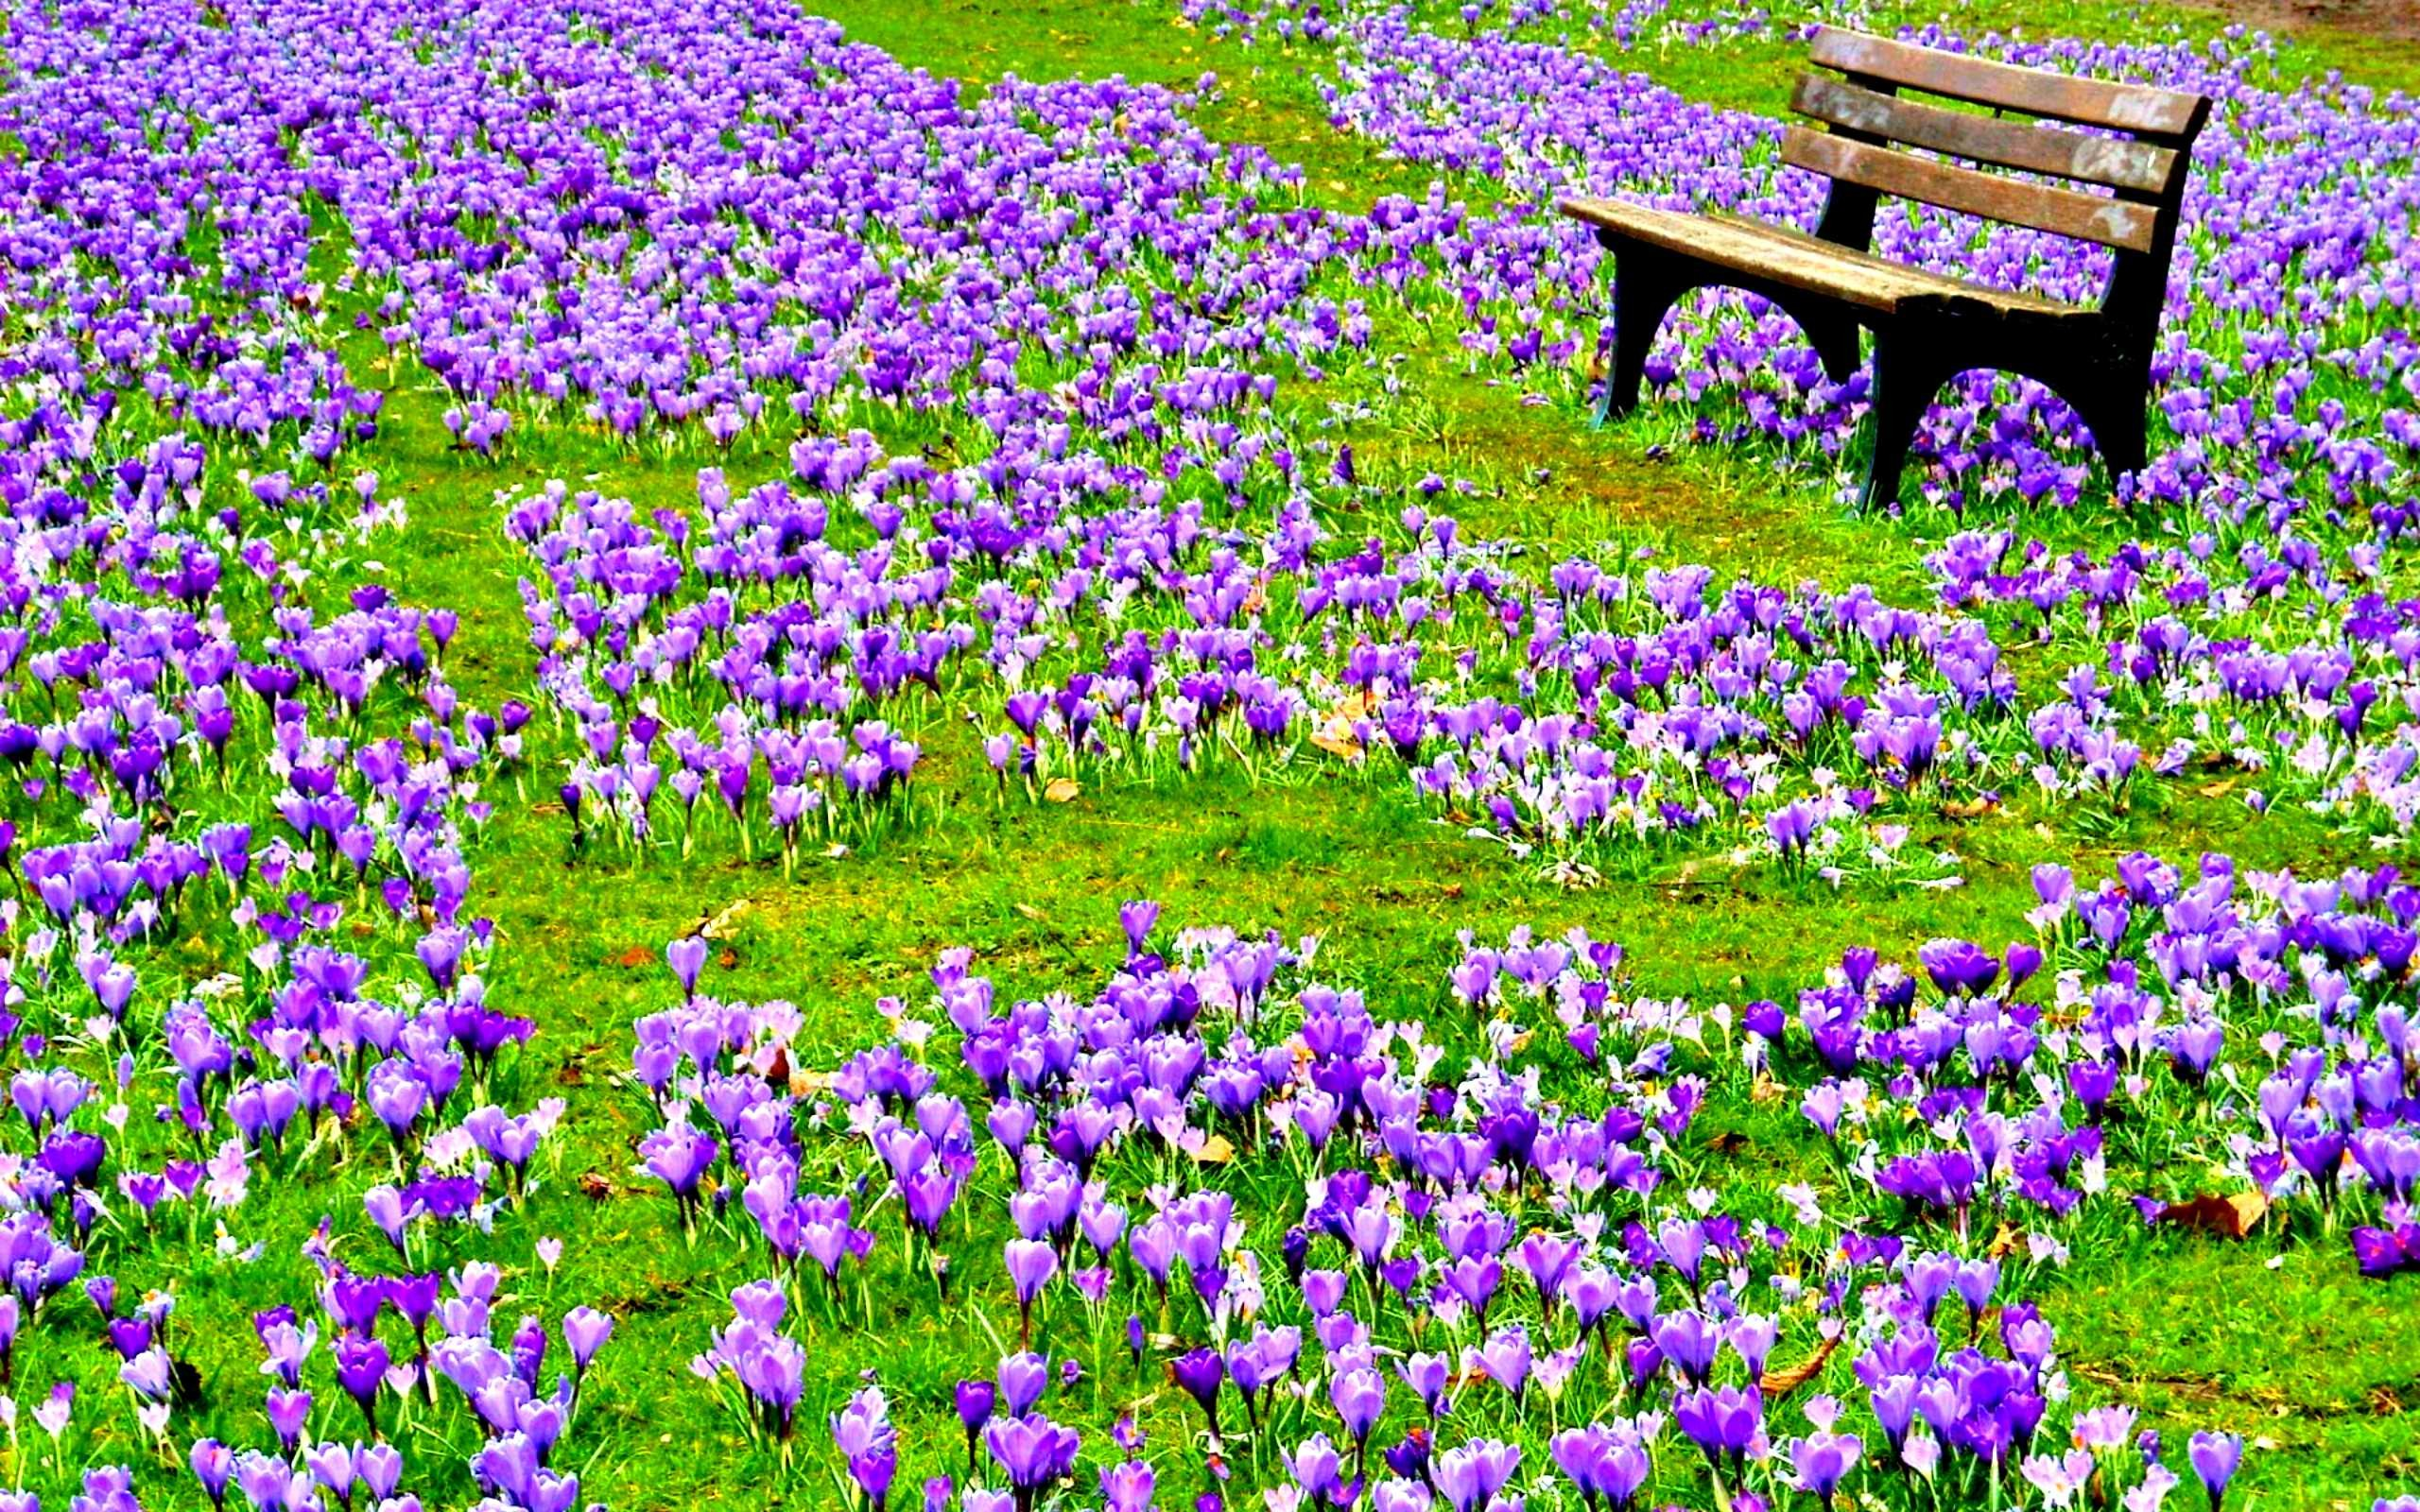 2560x1600 purple spring flowers wallpaper hd desktop wallpapers high definition  monitor download free amazing background photos artwork 2560×1600 Wallpaper  HD